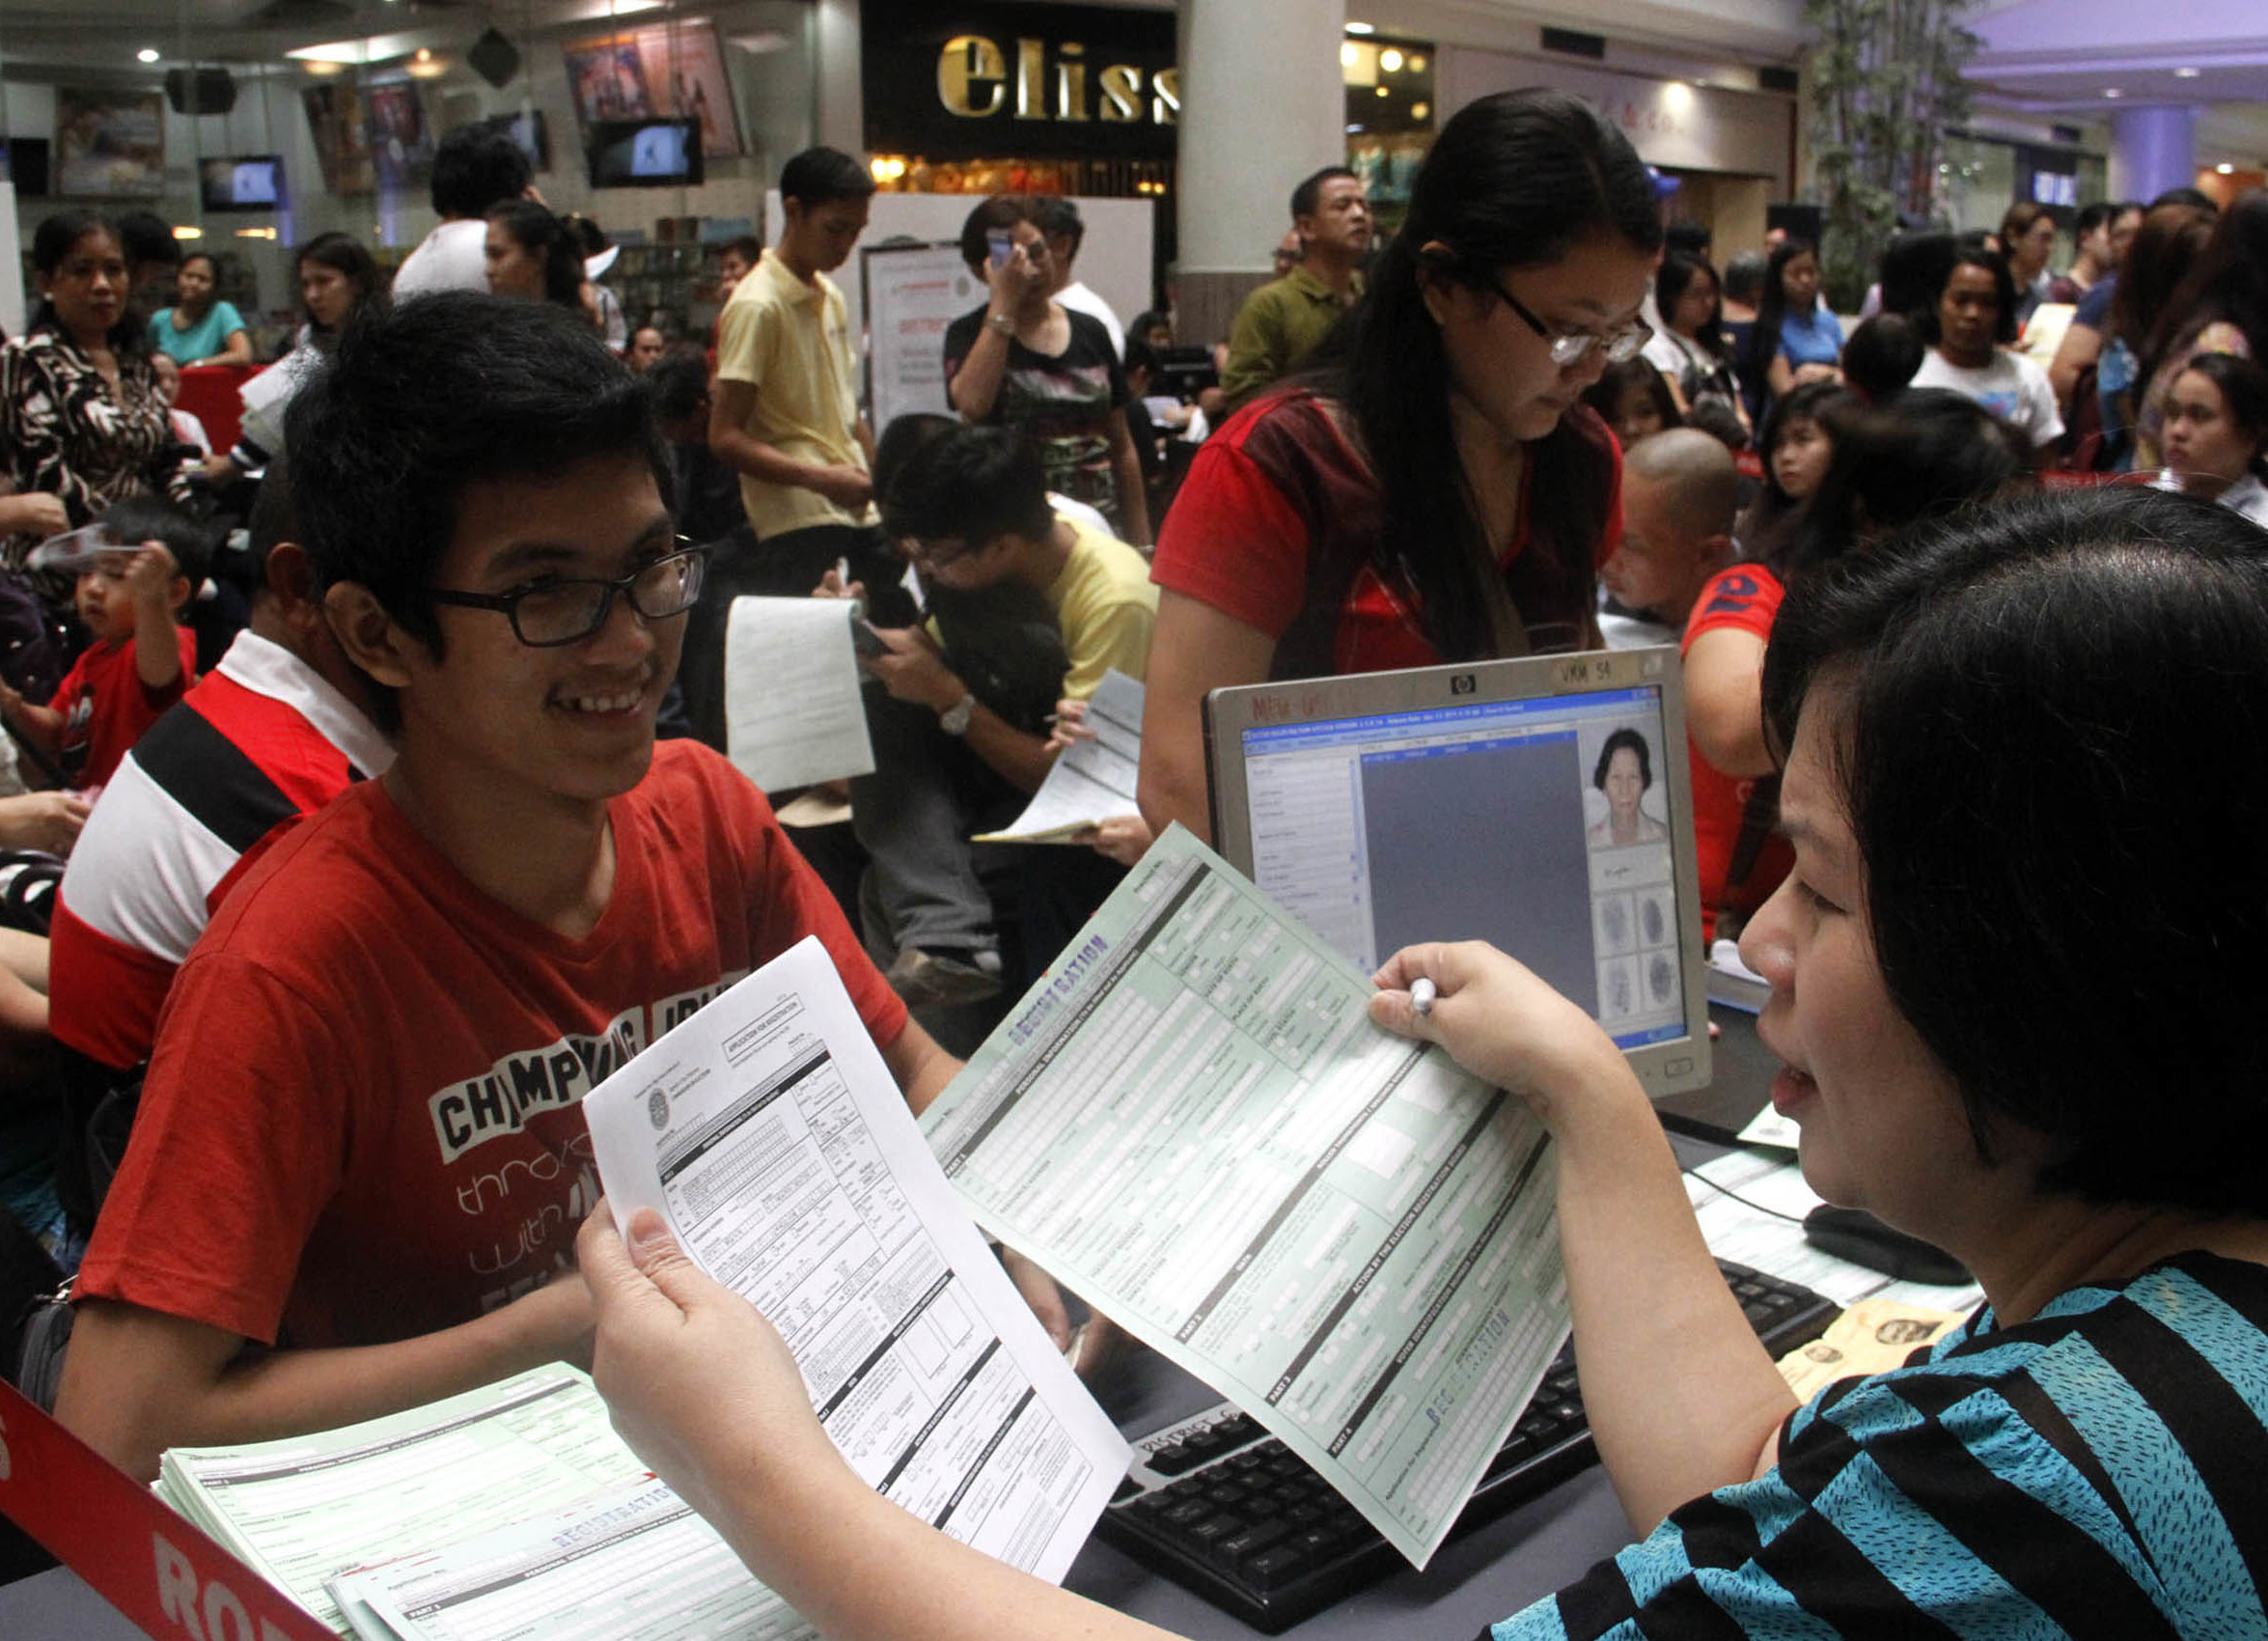 FILE: Over 118,000 individuals have so far registered for overseas absentee voting since the registration started over a year ago, the Commission on Elections - Office for Overseas Voting (Comelec-OFOV) said on Monday. (Avito C.Dalan / PNA)